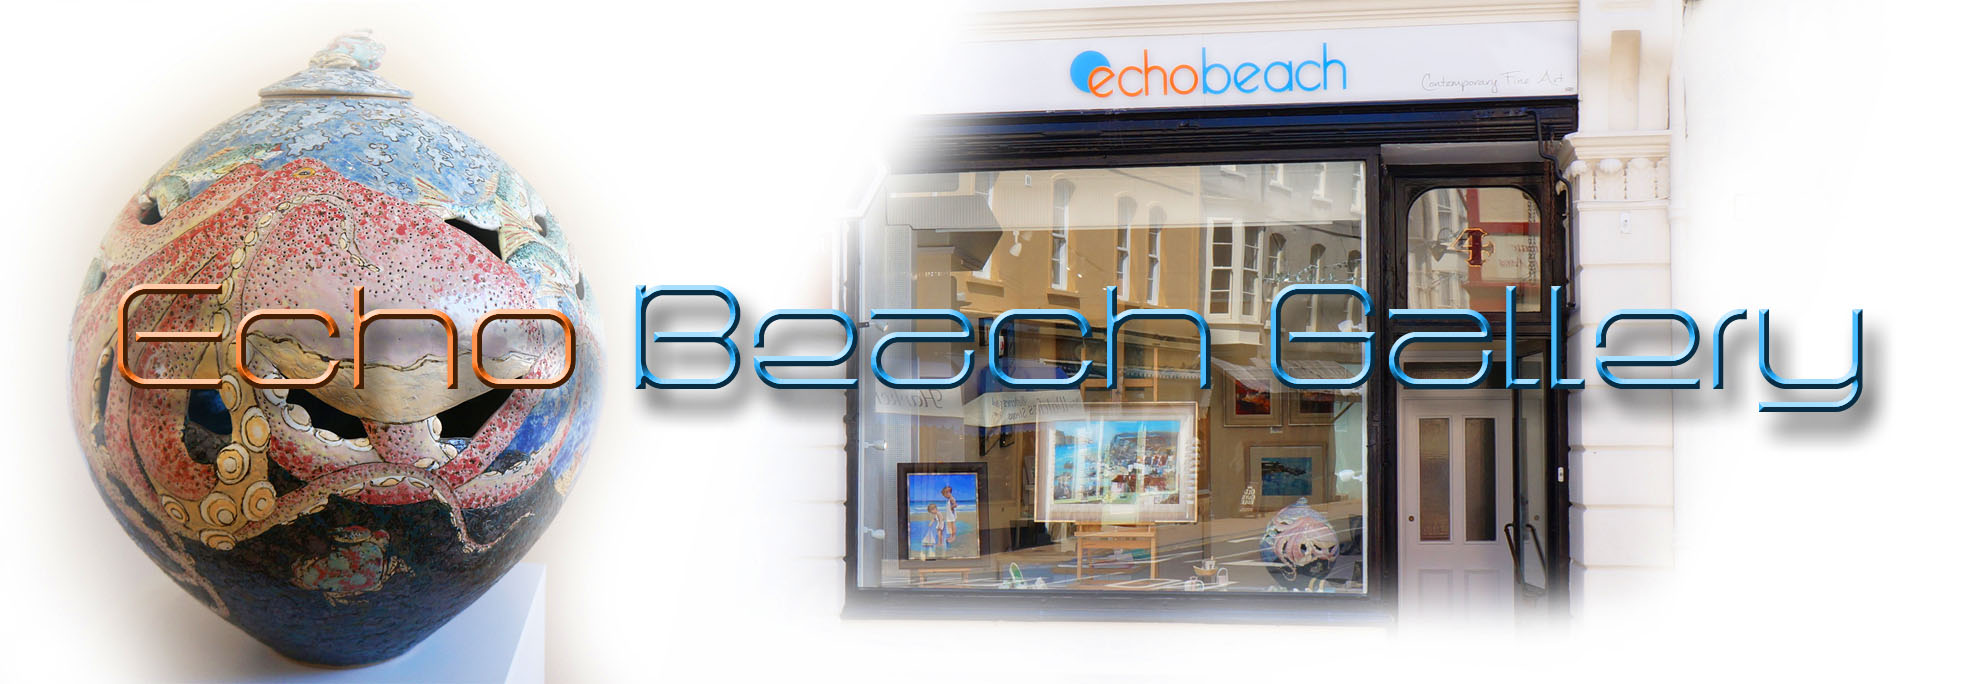 Echo Beach Gallery